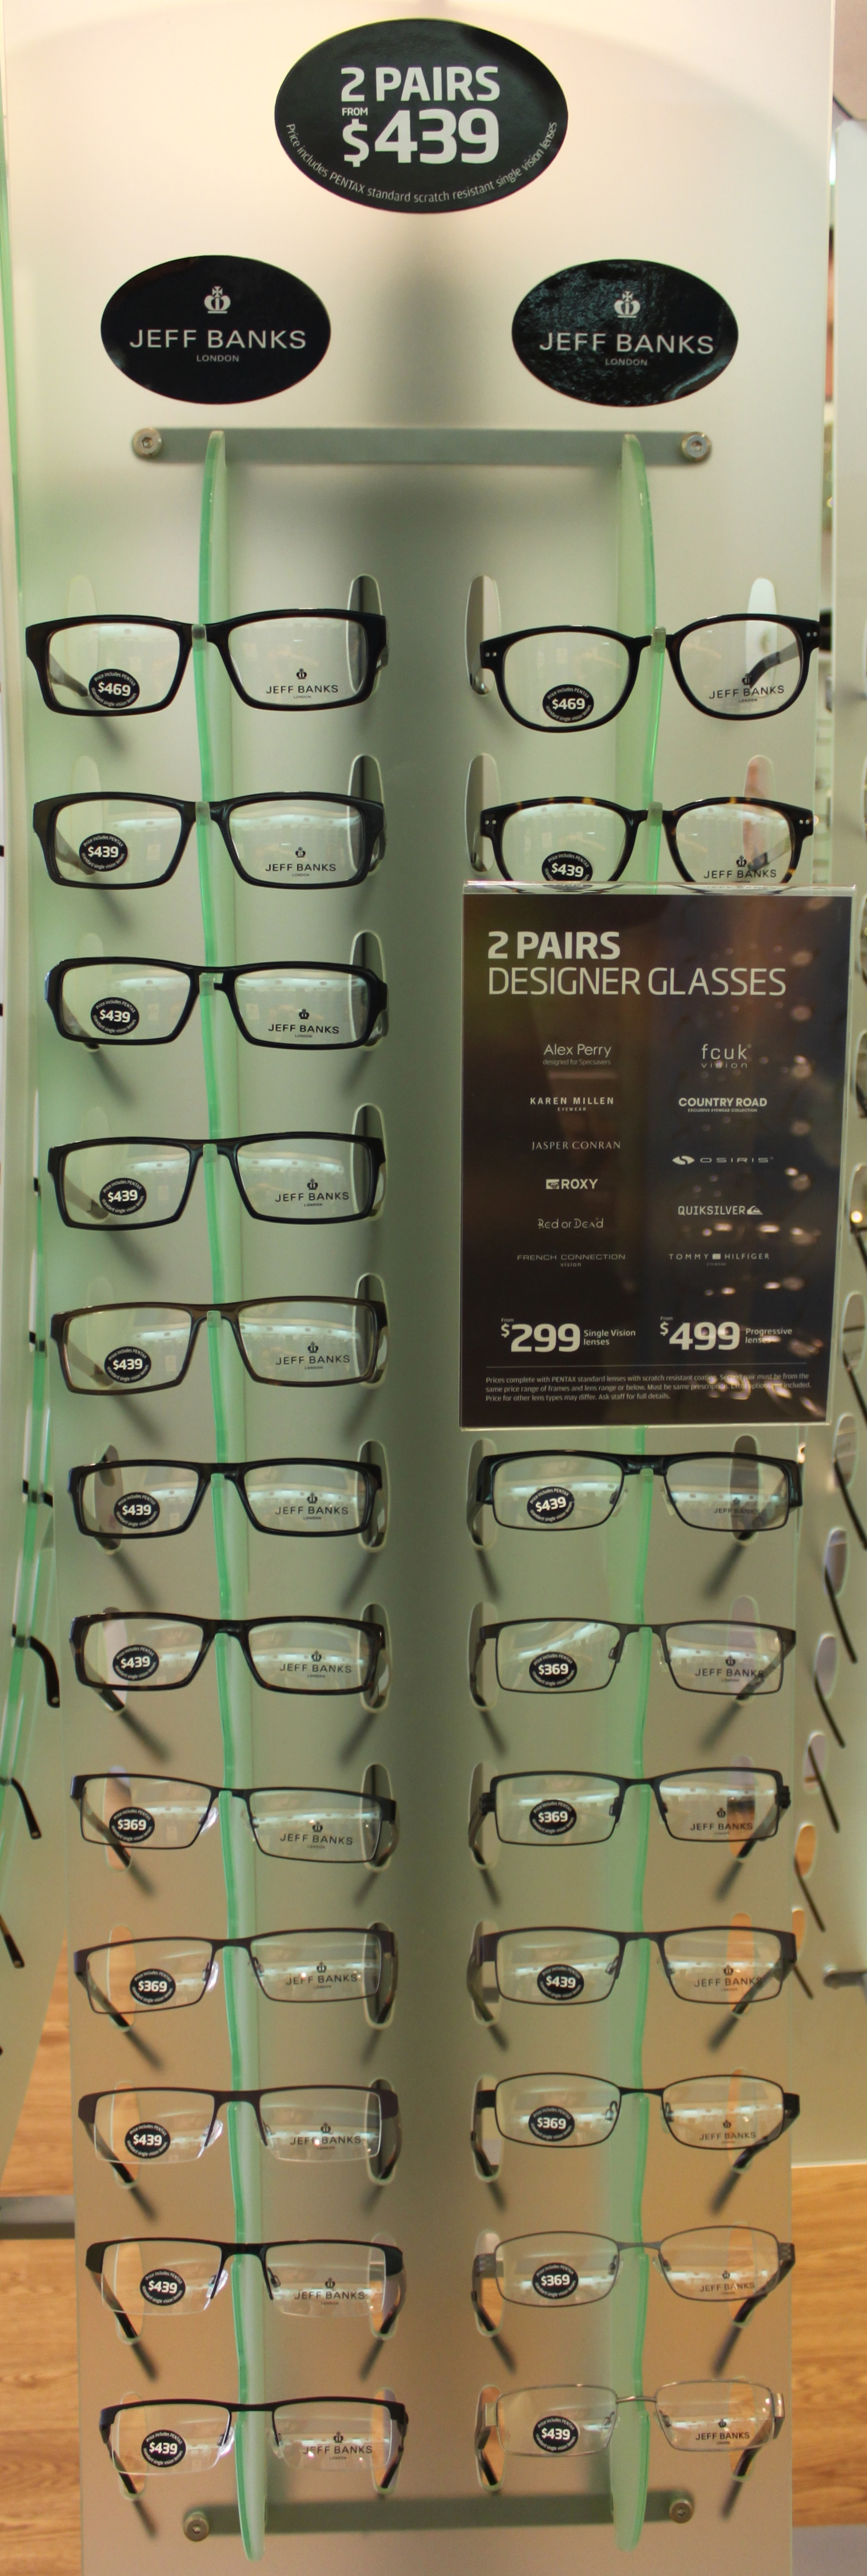 Specsavers Optometrists - Auckland CBD